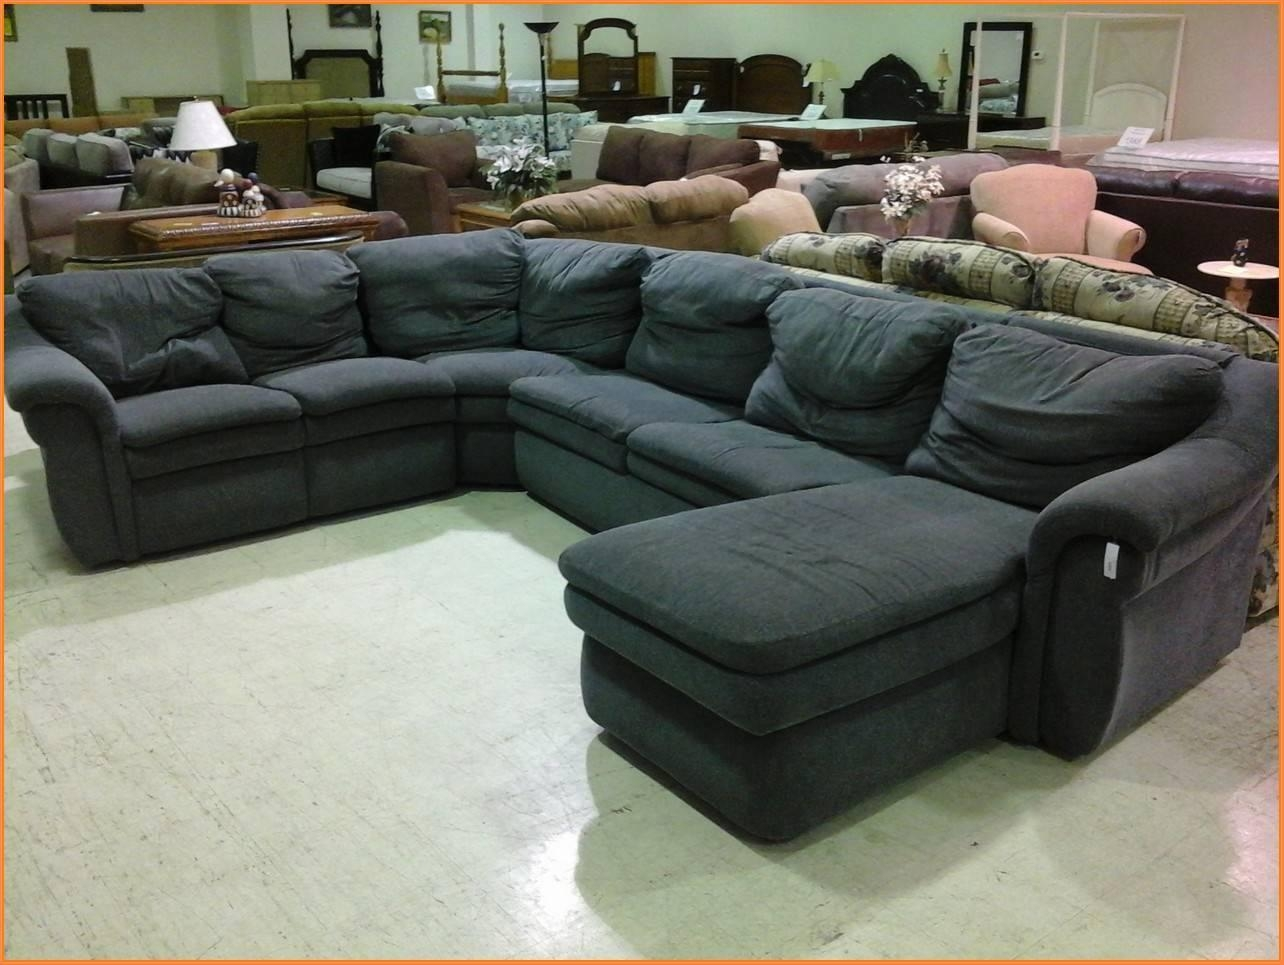 Sofas Center : Inspirational Lazy Boy Sectional Sofa In Office Within Lazyboy Sectional Sofa (Image 17 of 20)